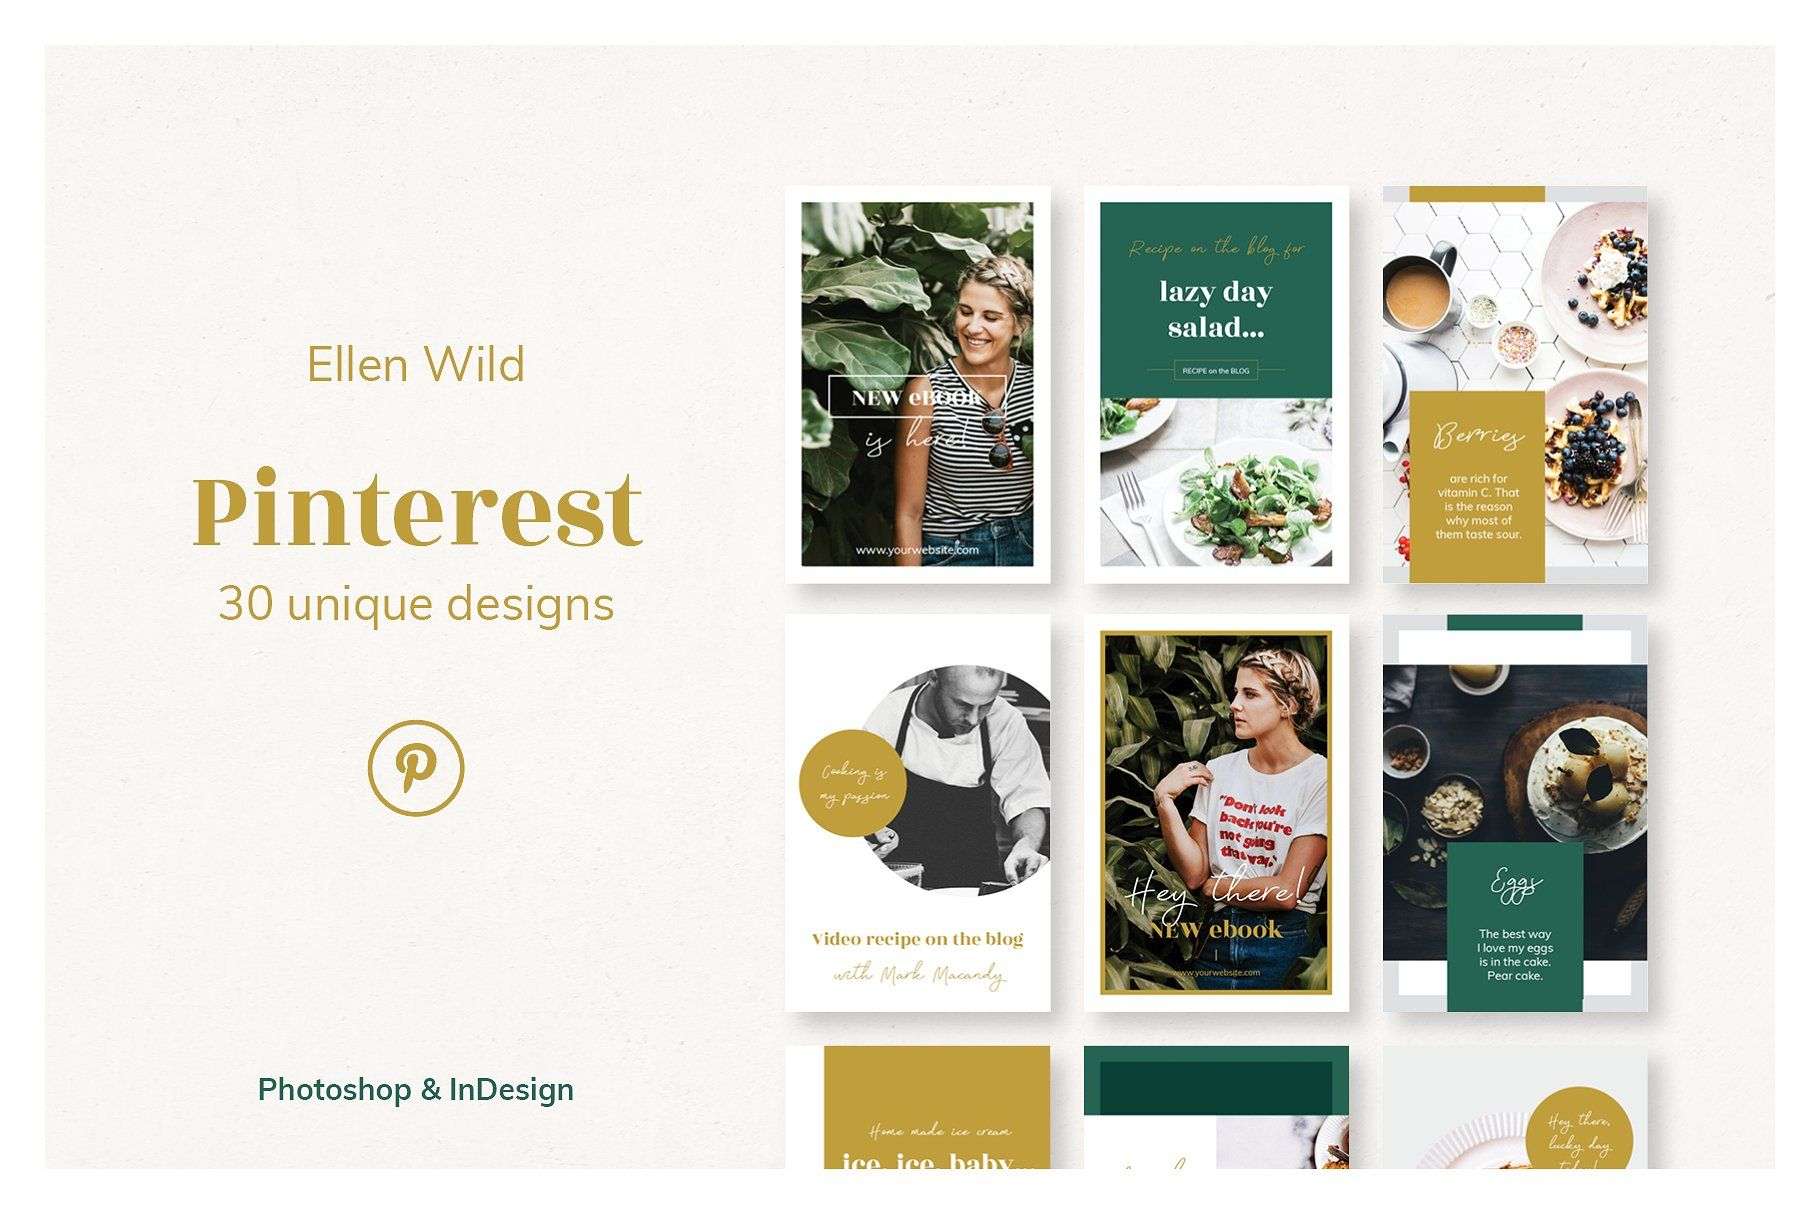 Pinterest Posts Ellen Wild Pinterest Templates Pinterest Help Tutorials Photoshop Design